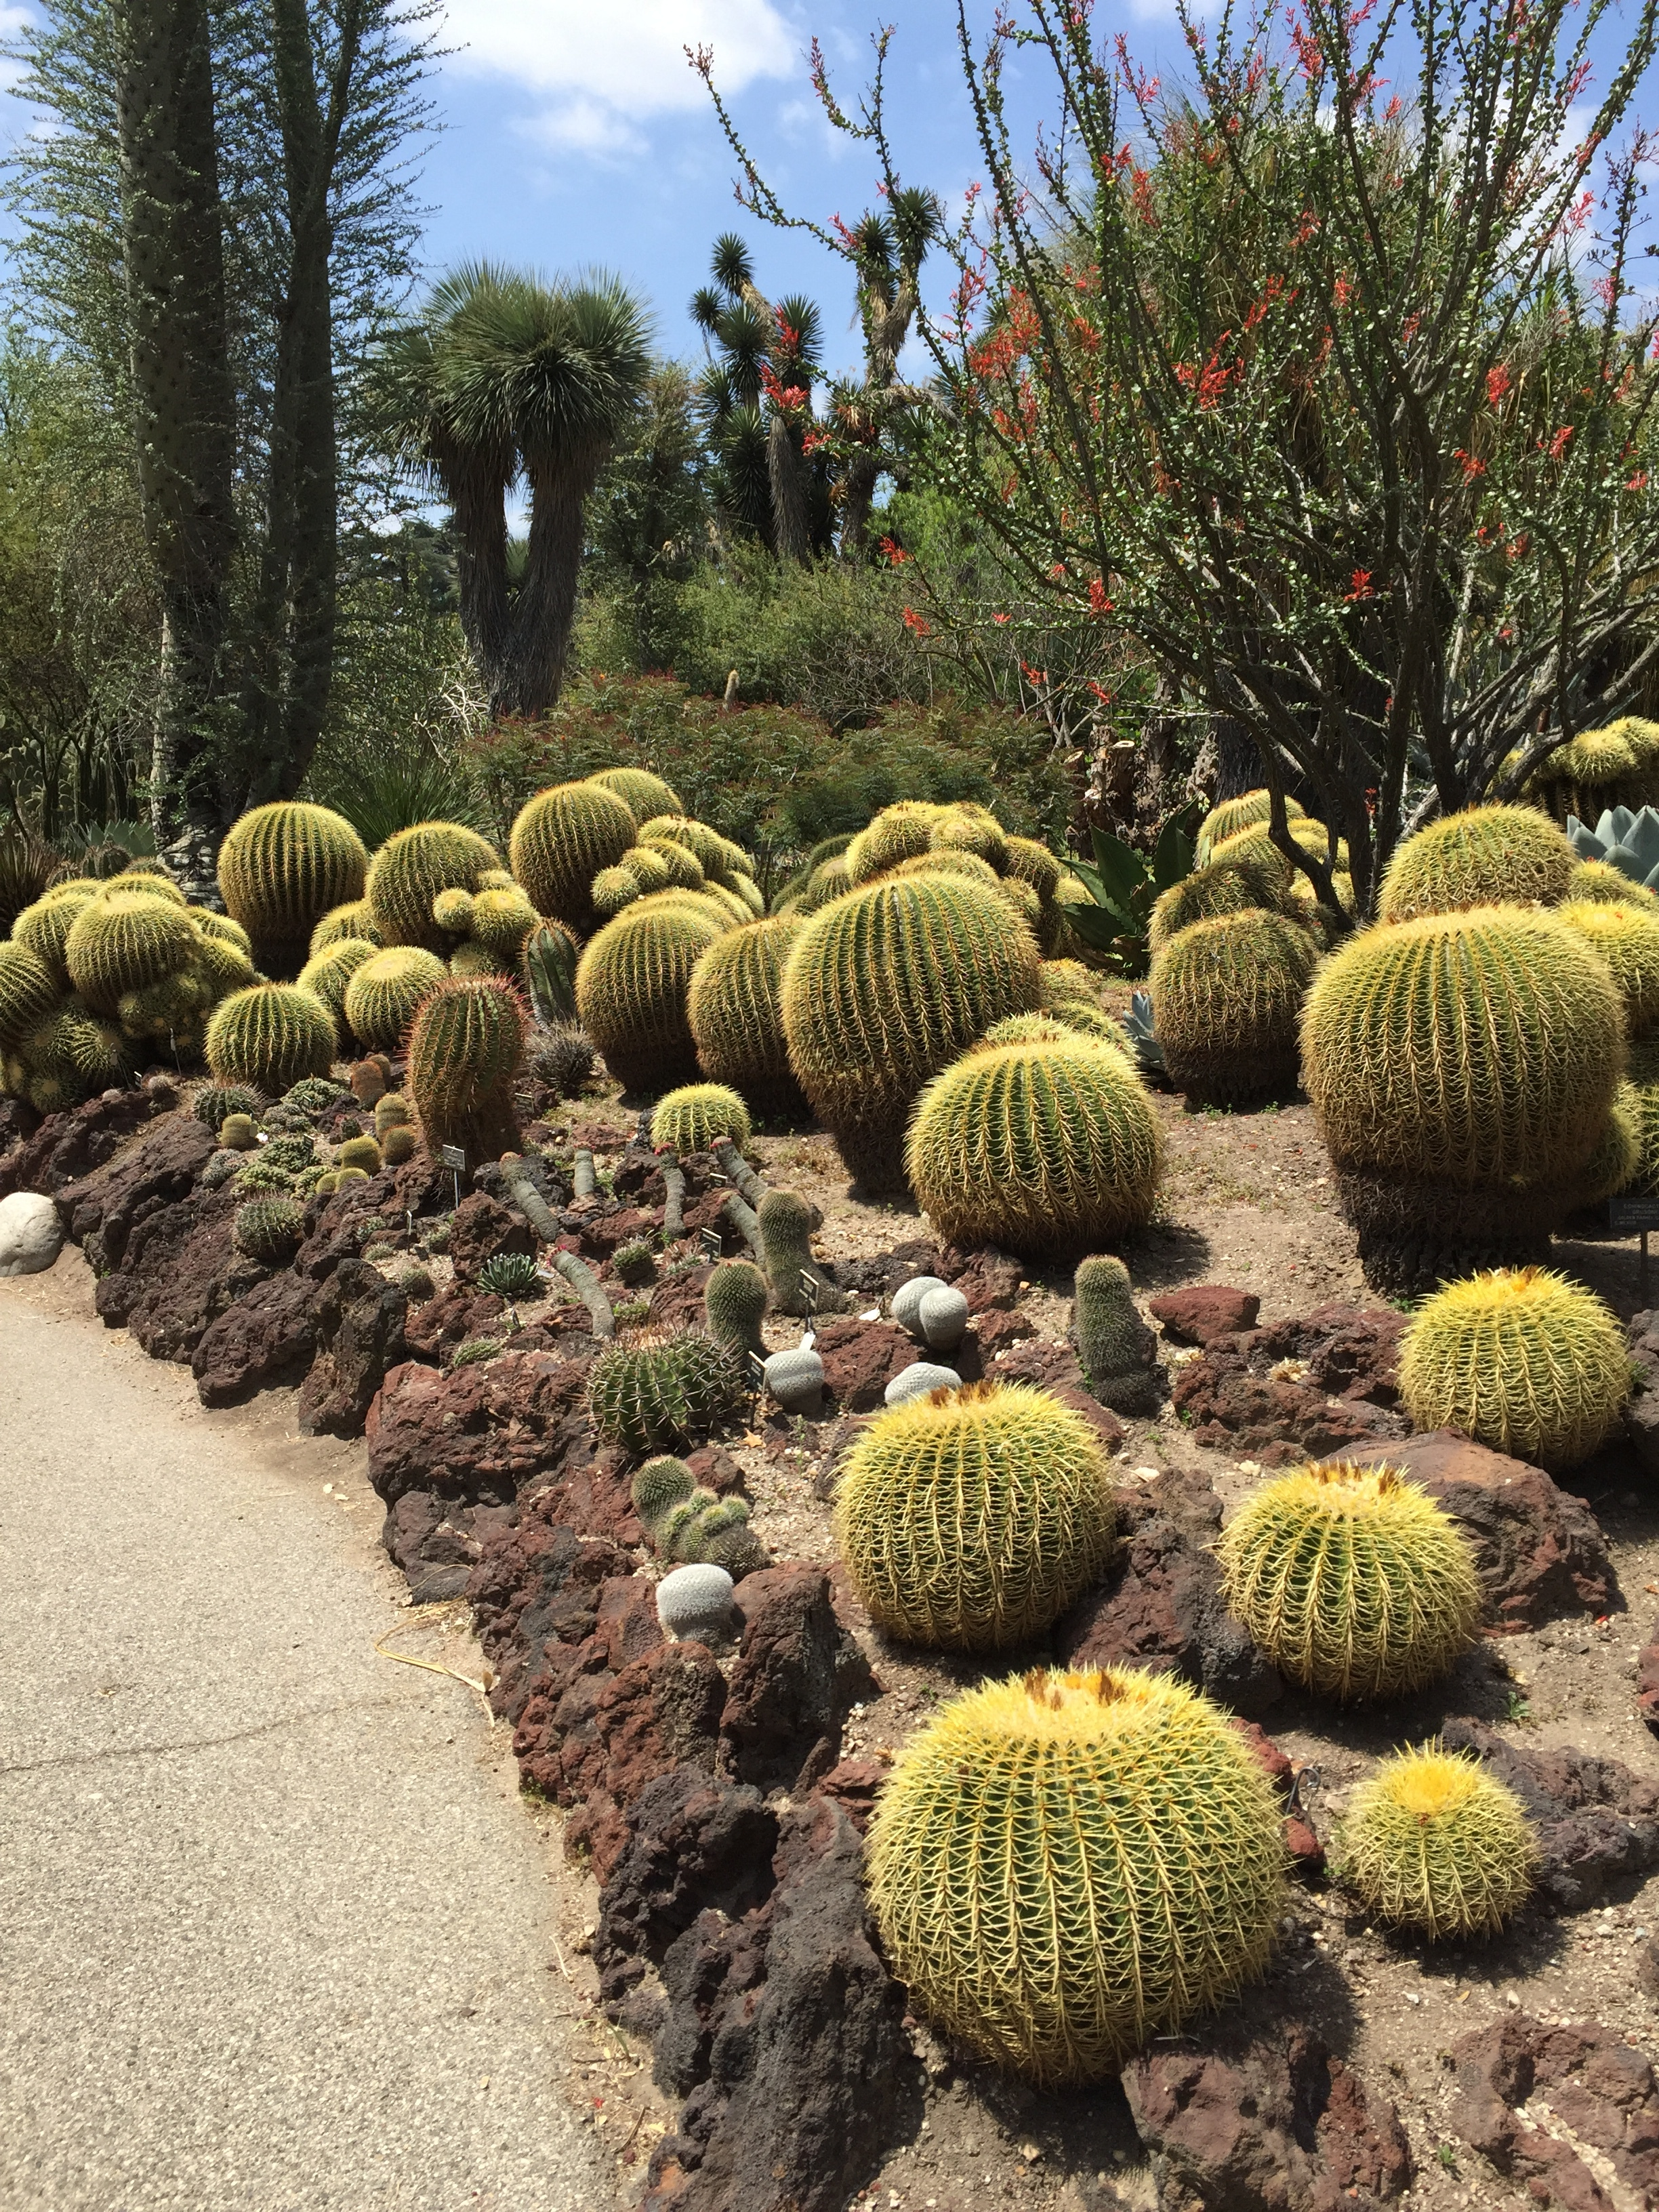 CALIFORNIA LIKE A LOCAL: A VISIT TO THE HUNTINGTON BOTANICAL GARDENS ...